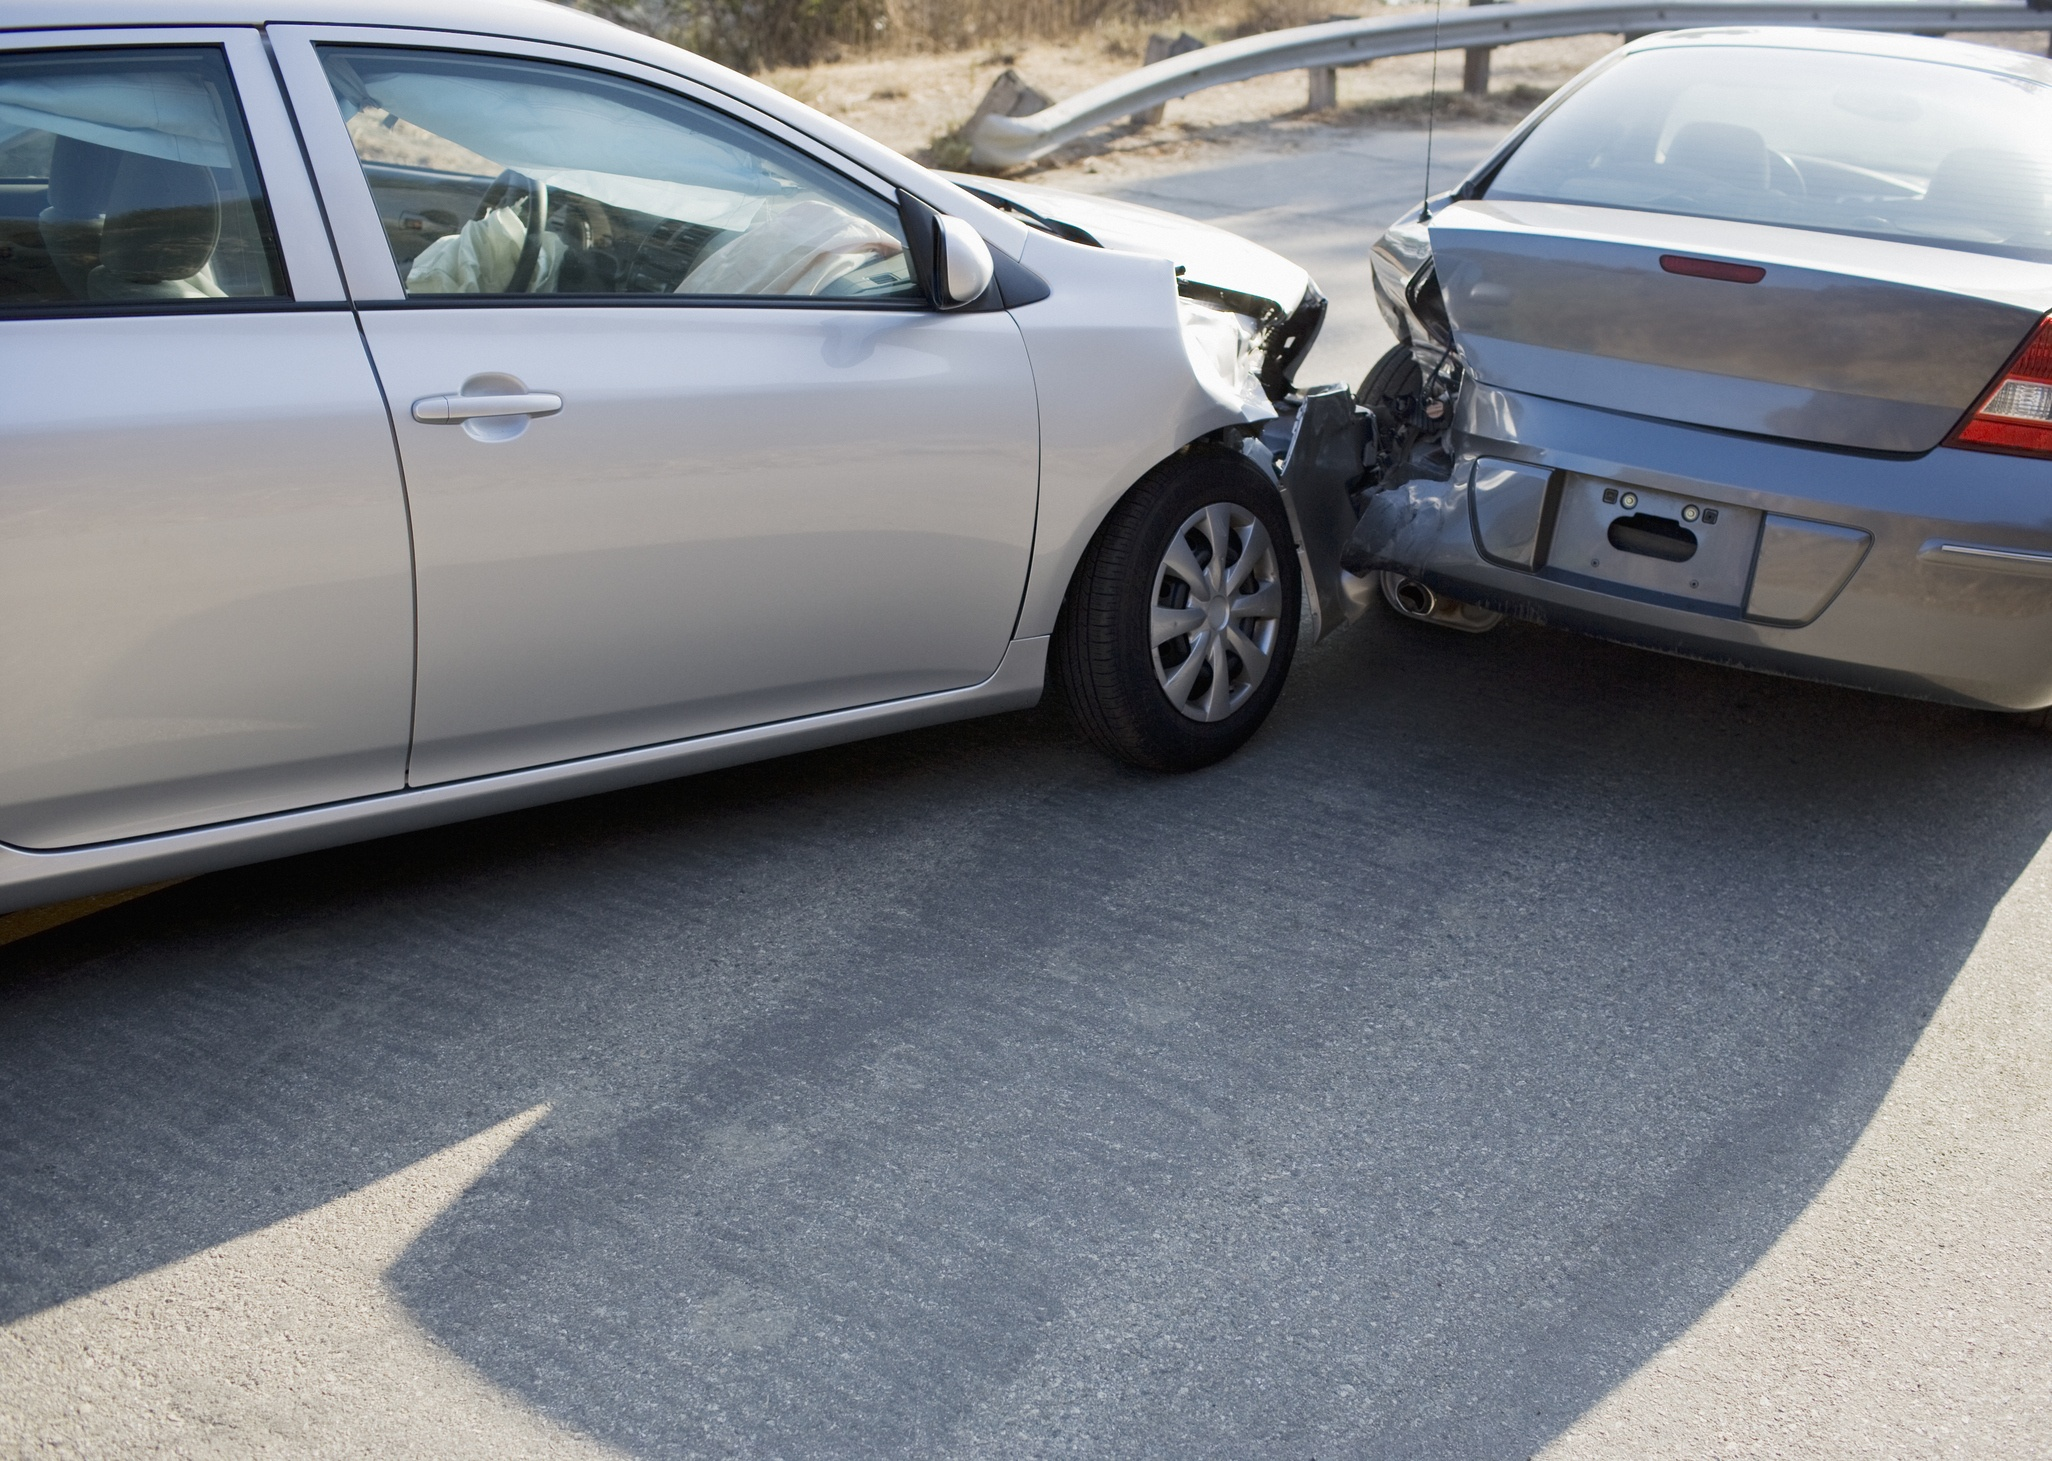 Two cars in crash